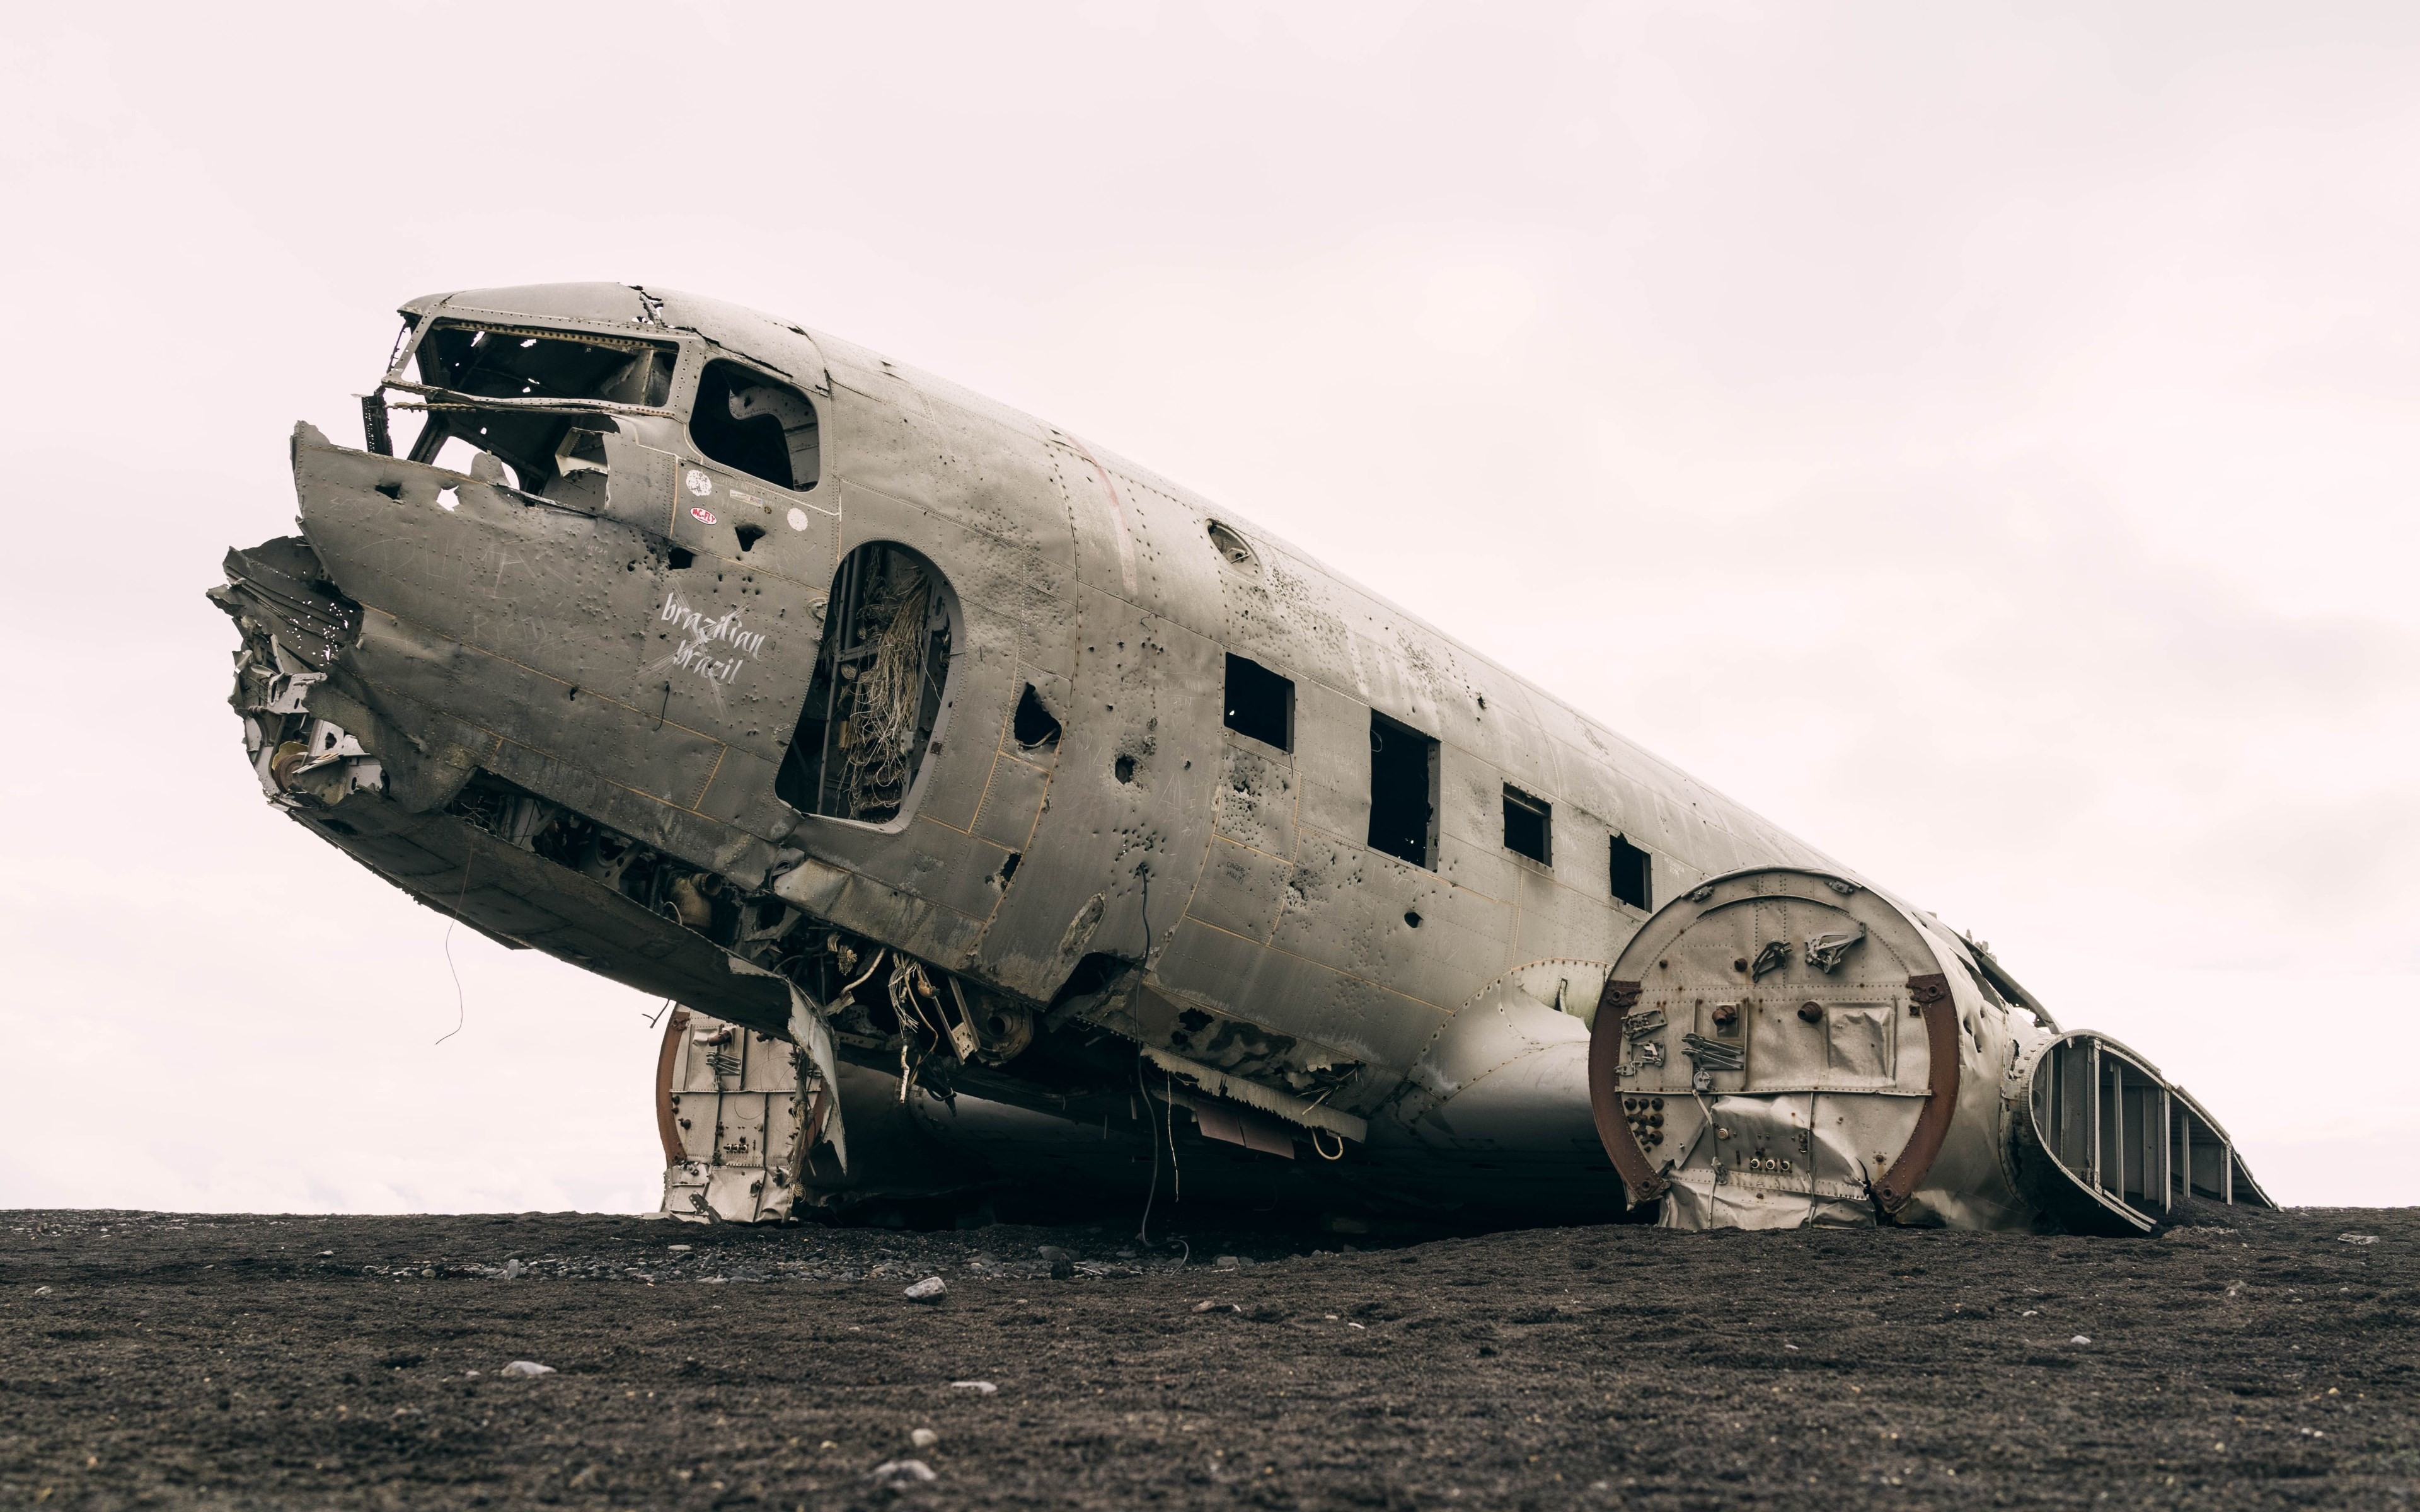 Wrecked airplane | 3840x2400 wallpaper